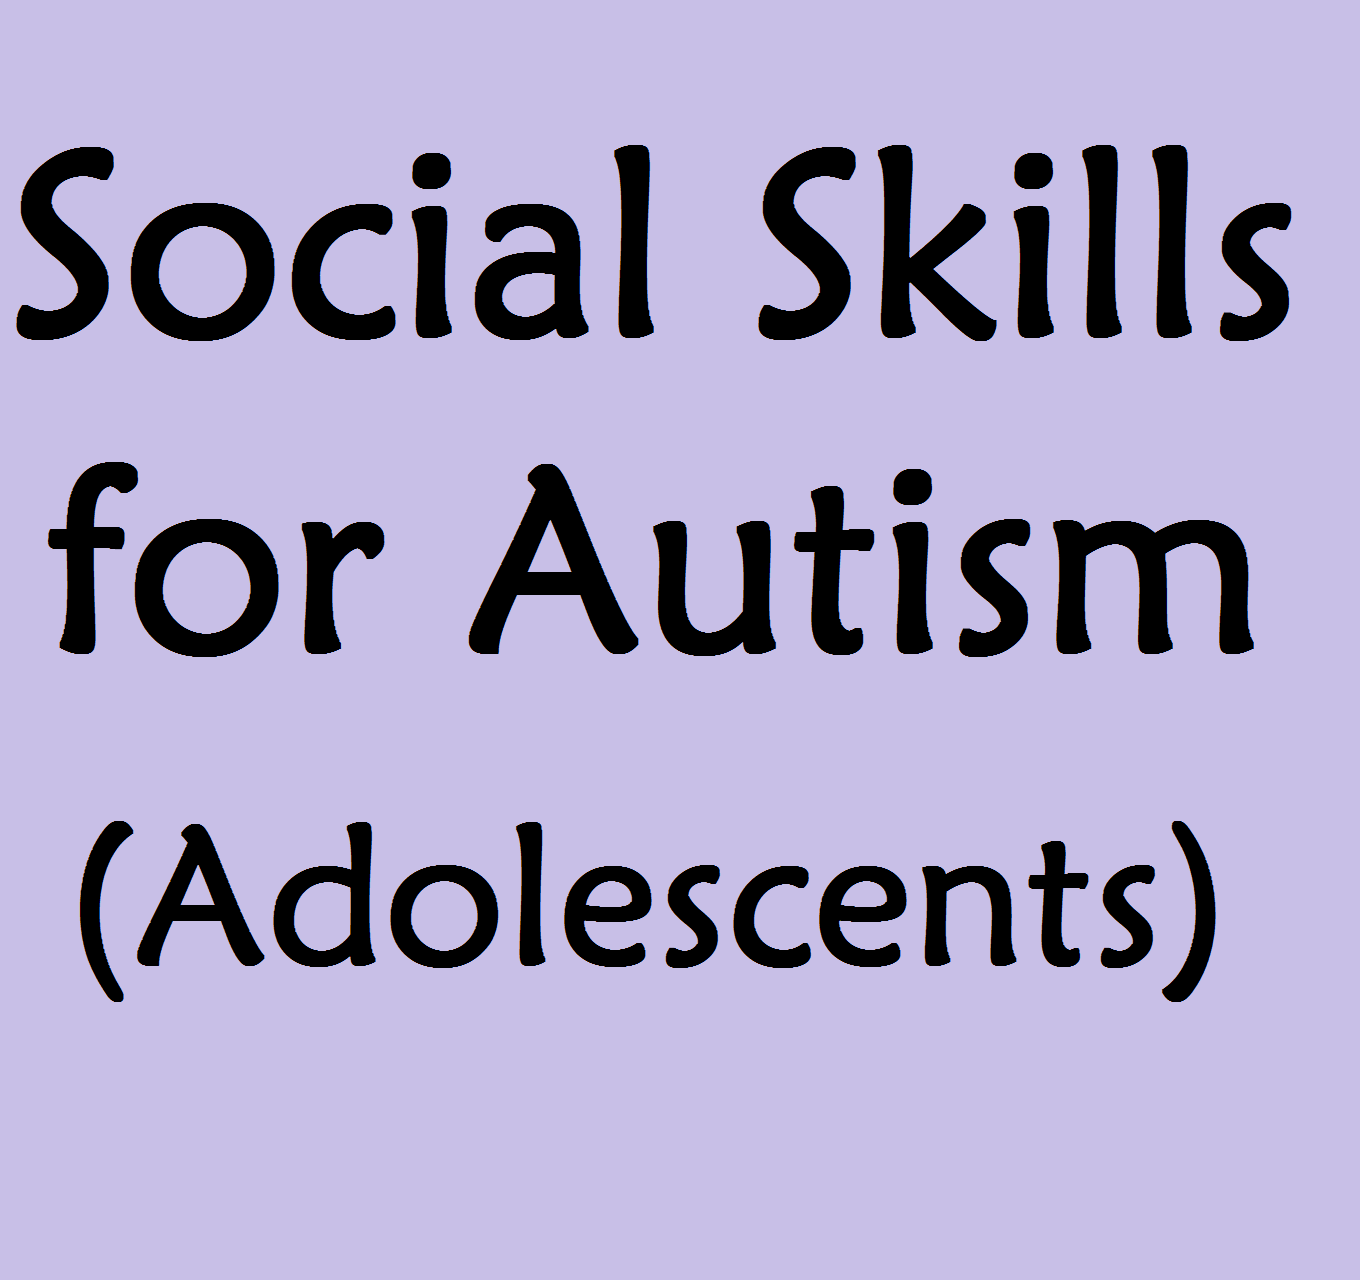 Ci L Skills Utism Dolescents Nd Children With High